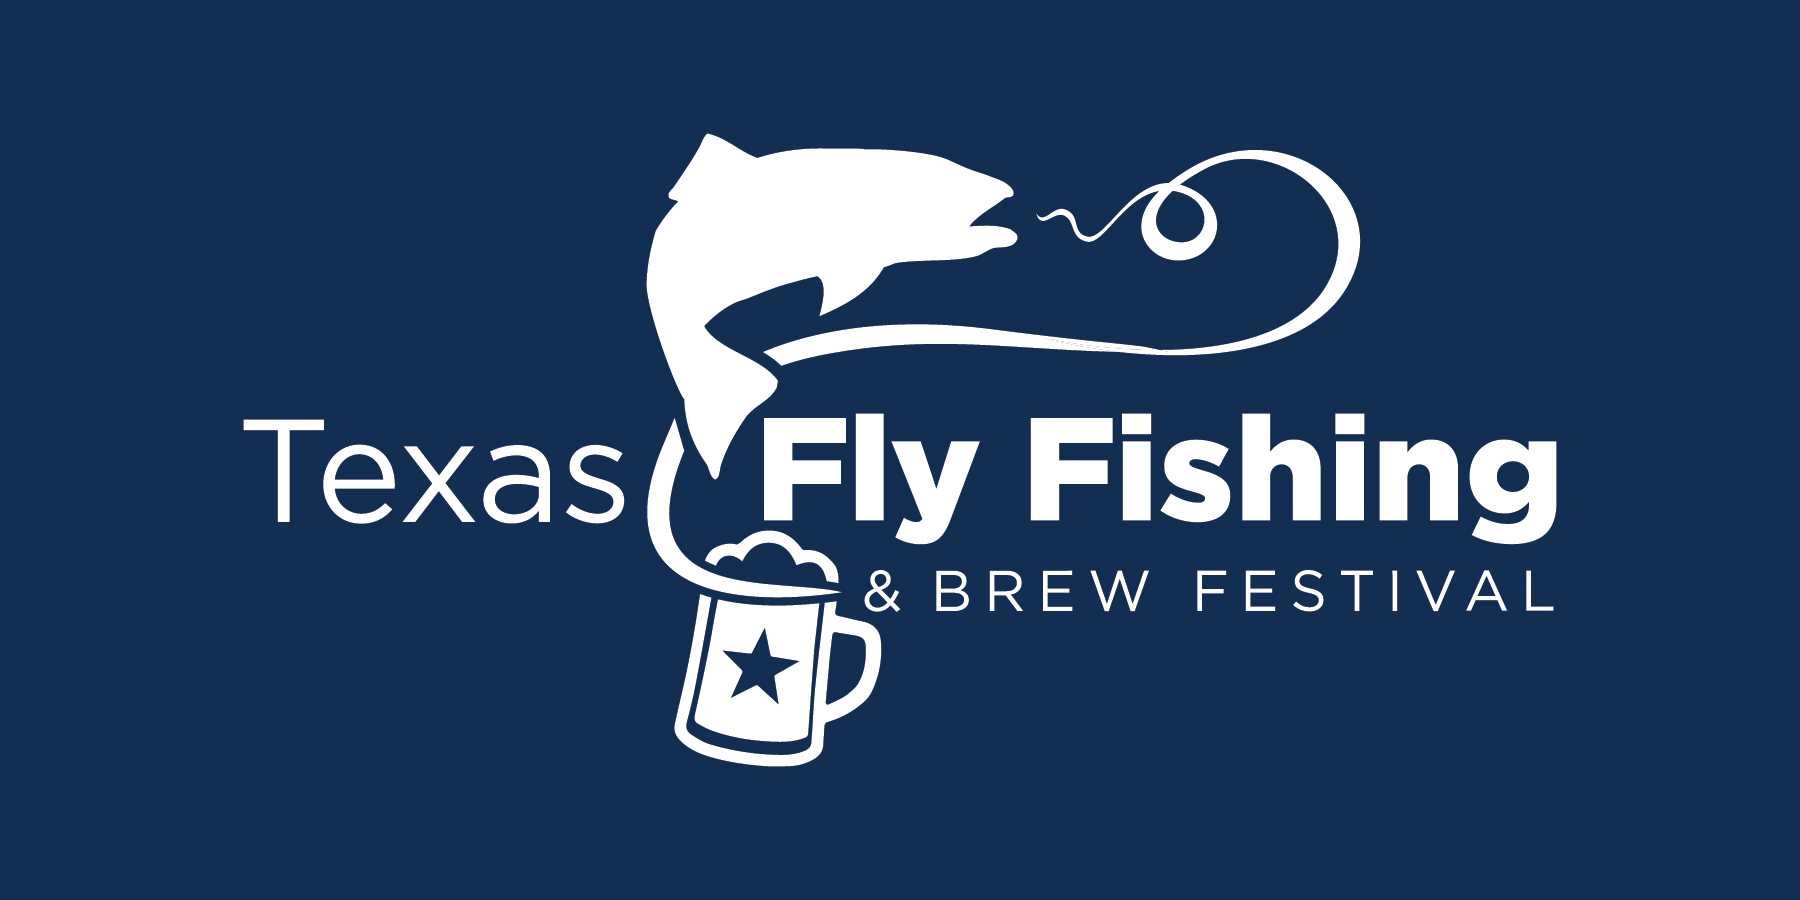 Inaugural Texas Fly Fishing & Brew Festival Comes To Plano